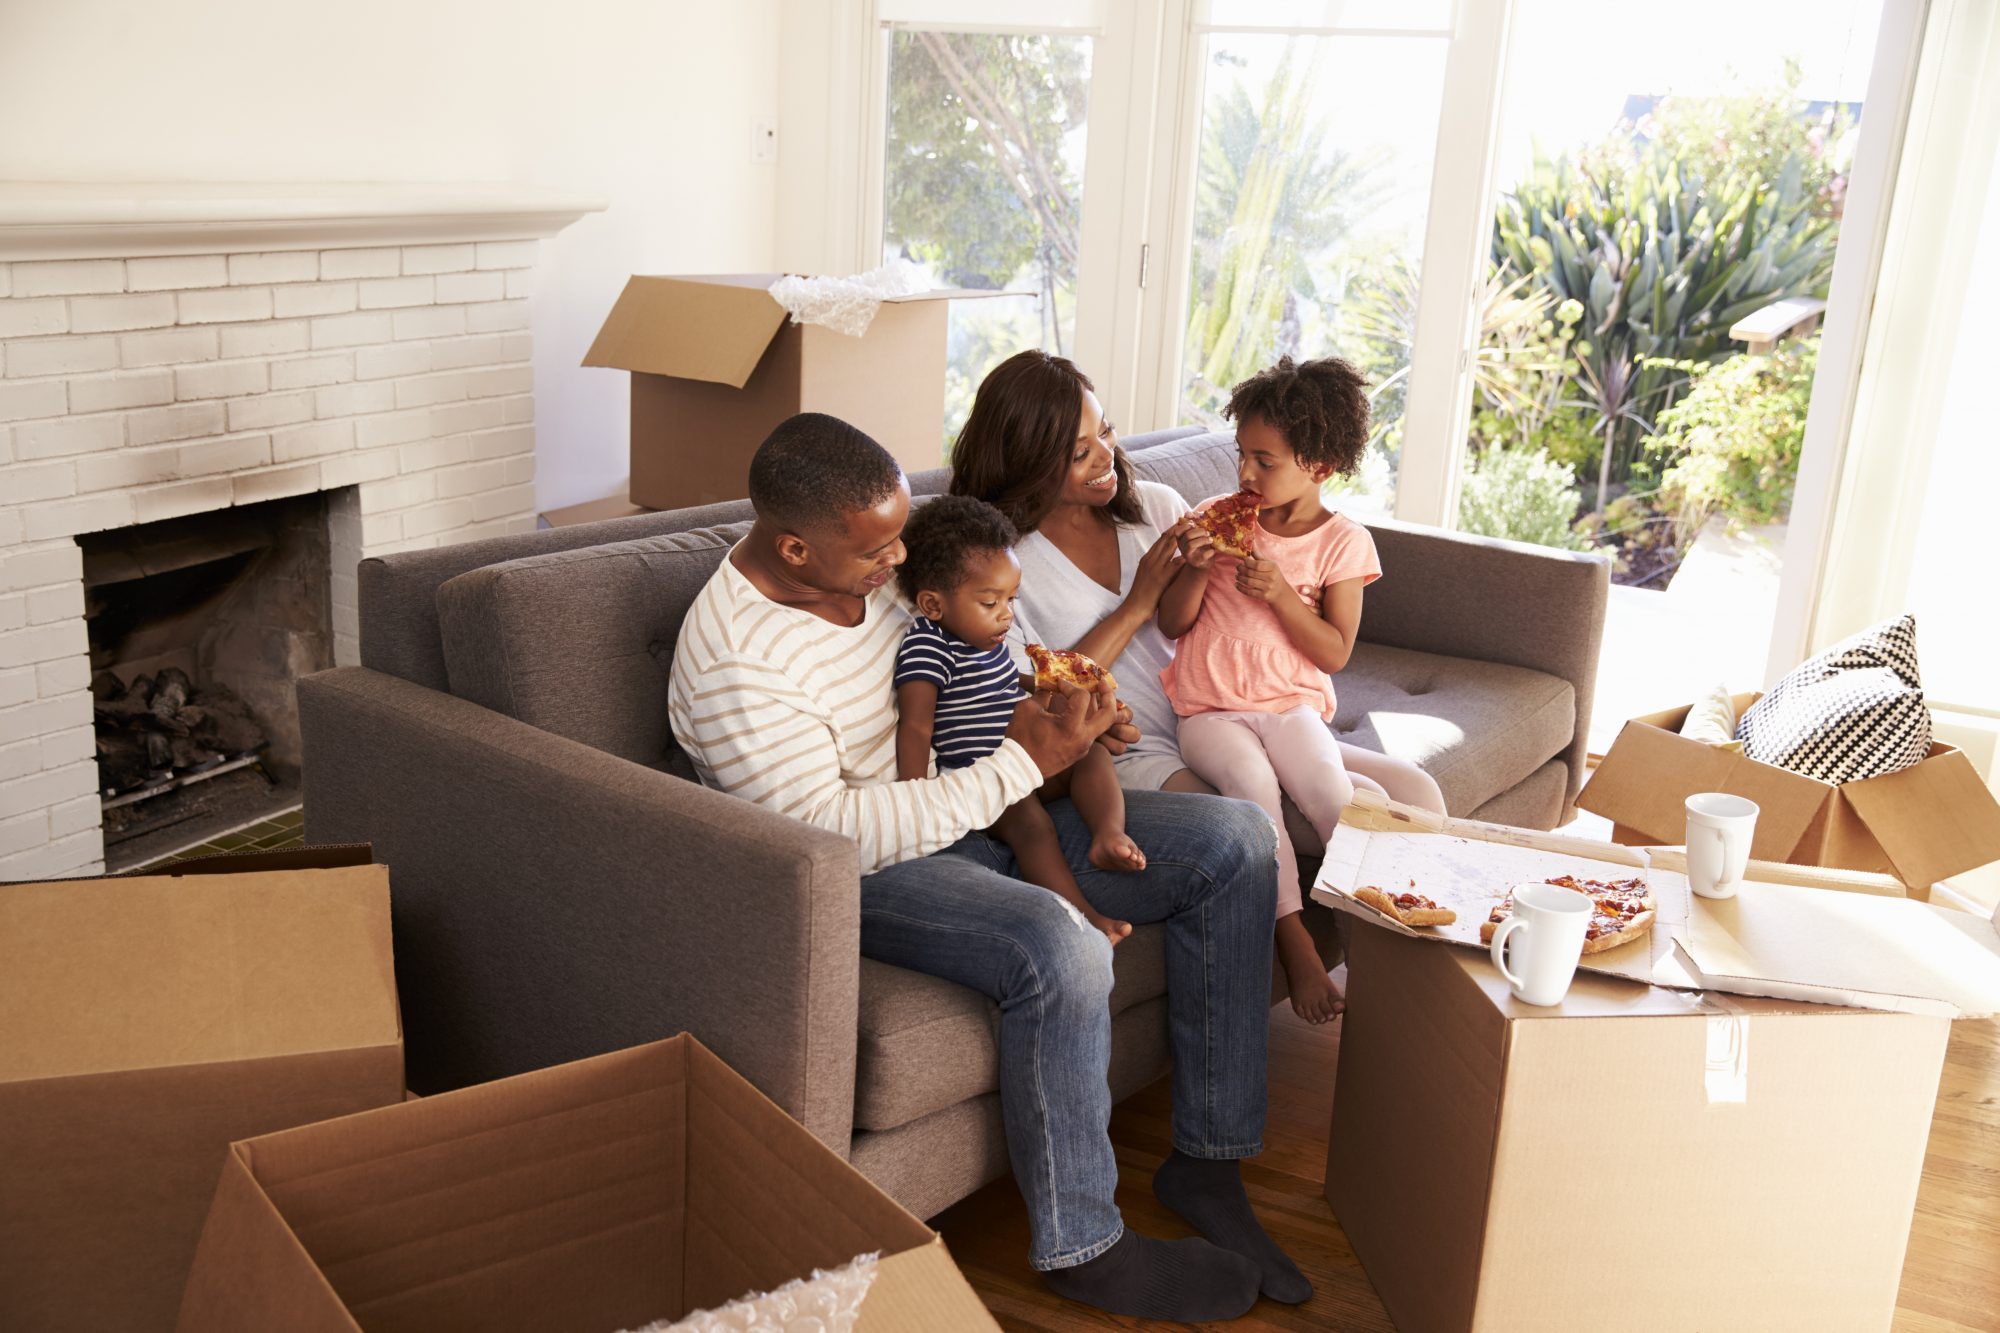 Young family enjoys eating their first dinner together in their new home with unpacked boxes surrounding them.